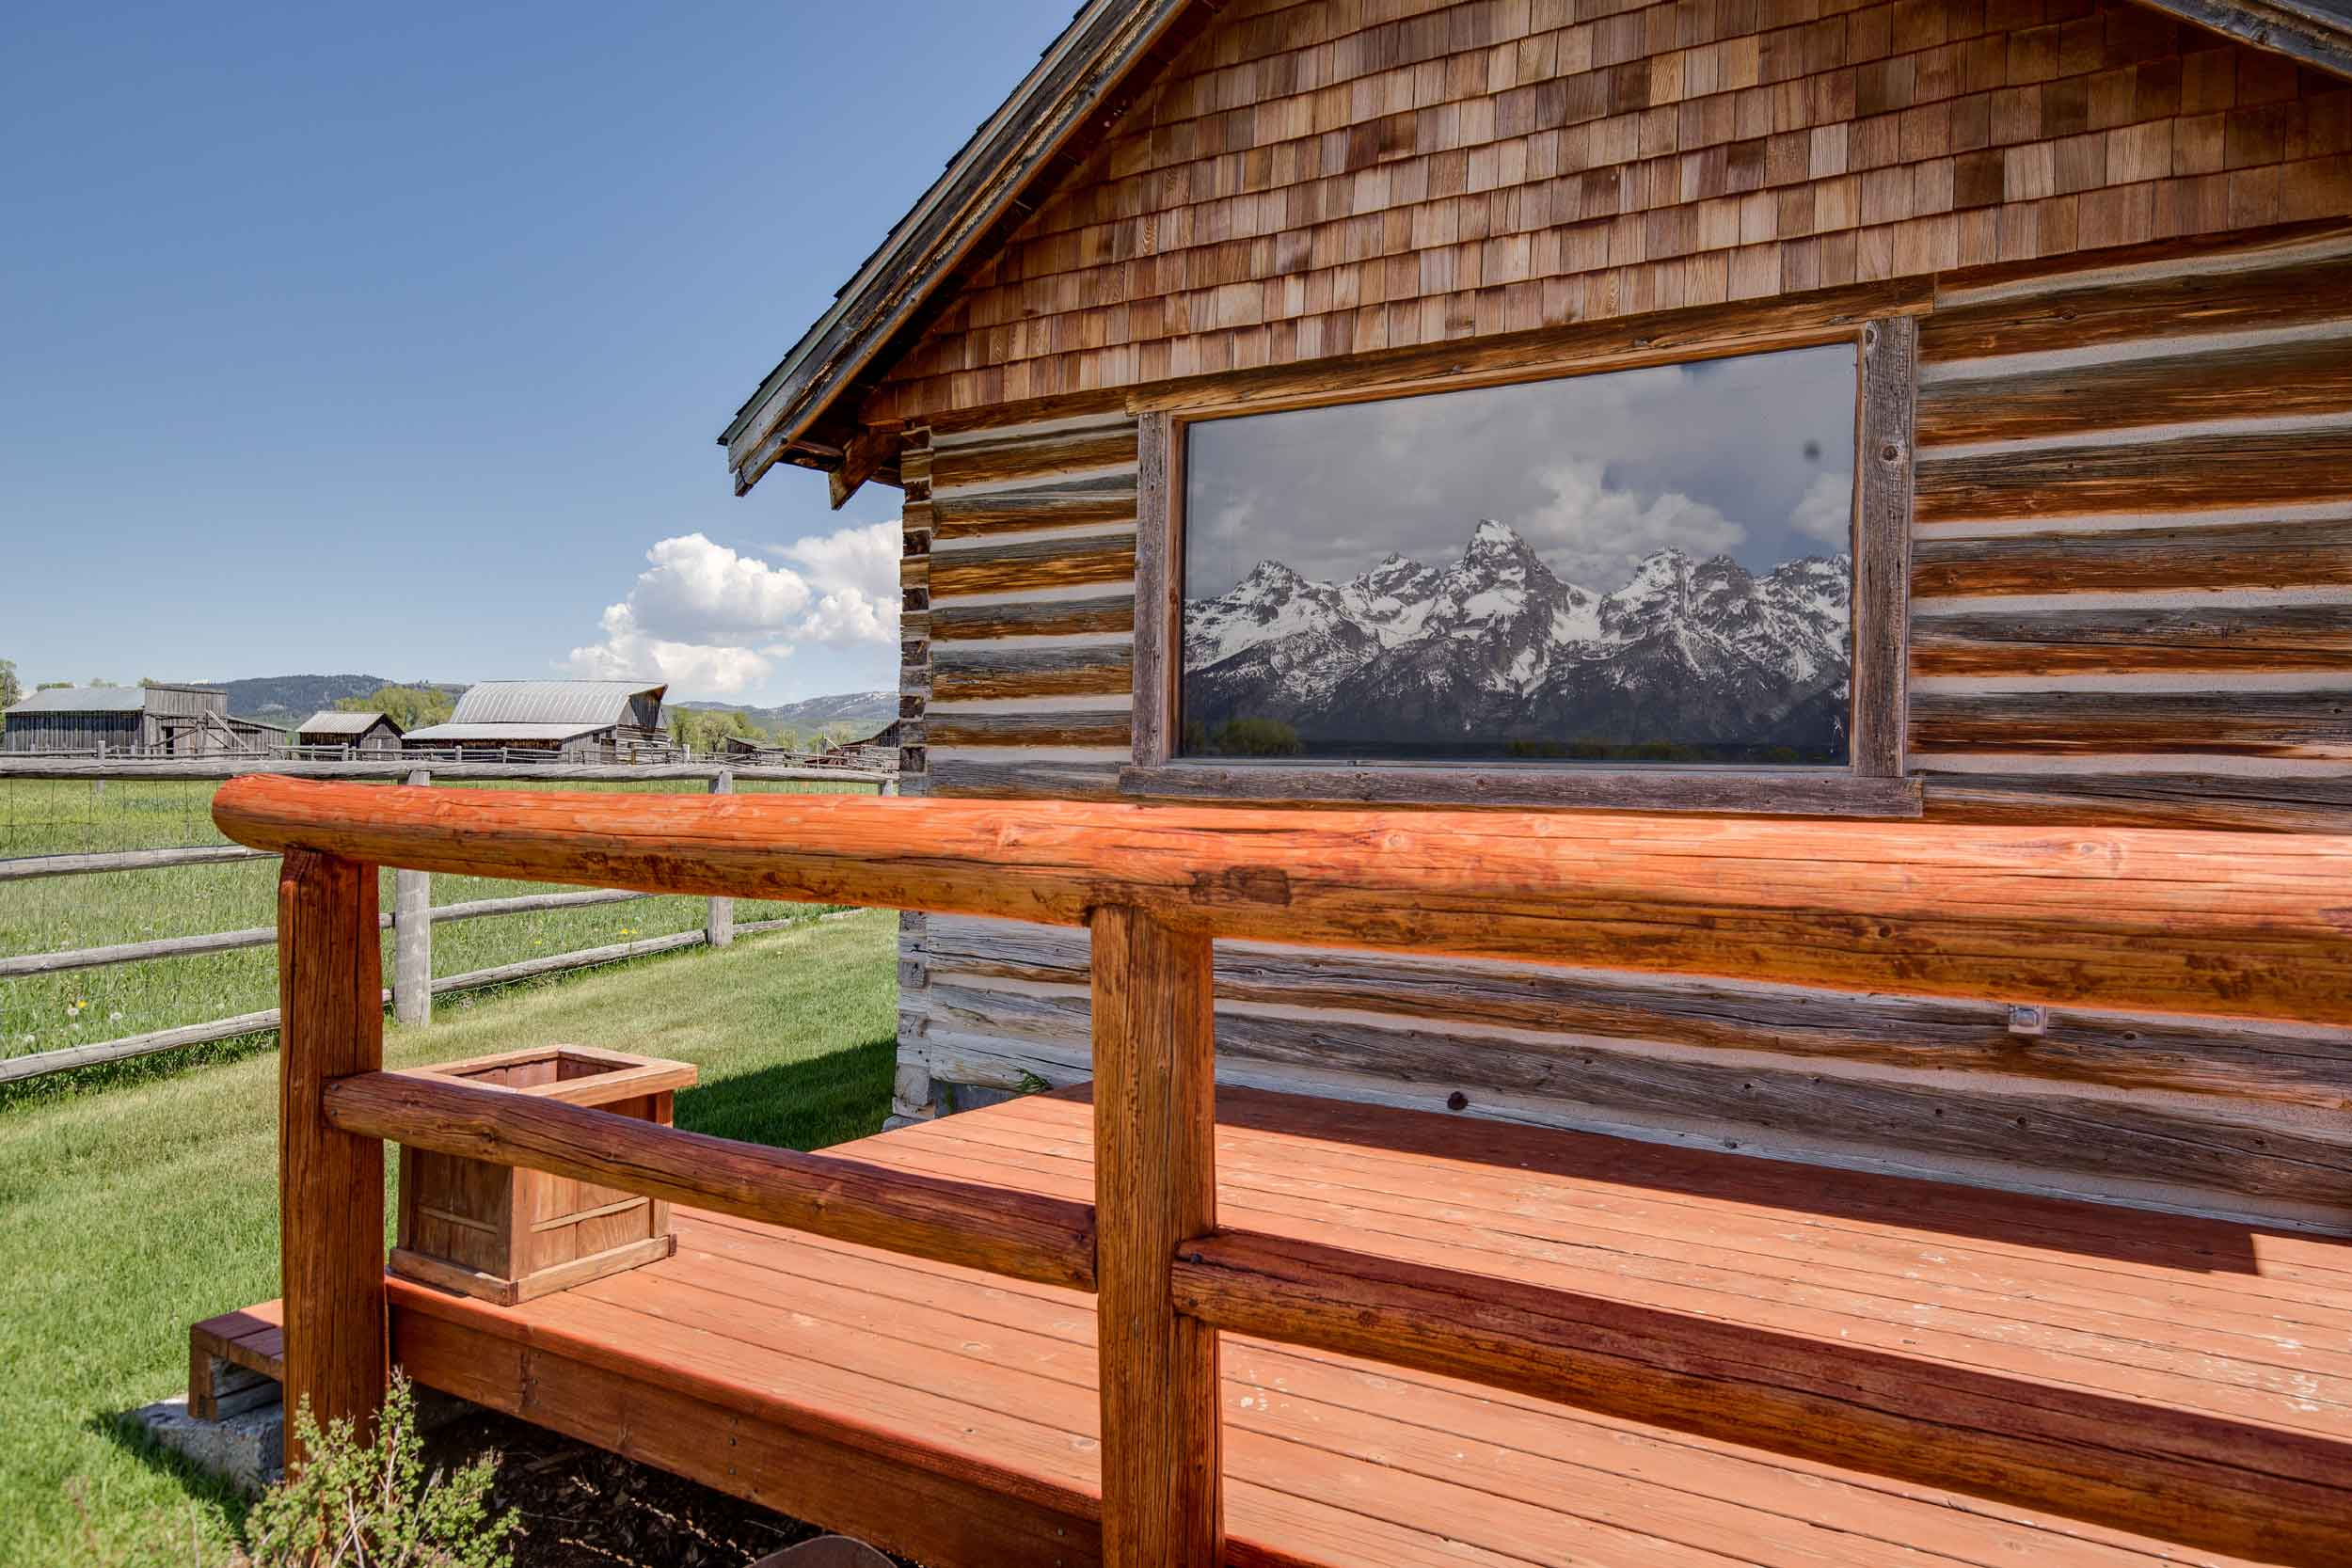 A testament to the pioneers of the American West, Moulton Ranch is the last remaining homestead in Grand Teton National Park's Mormon Row Historic District.